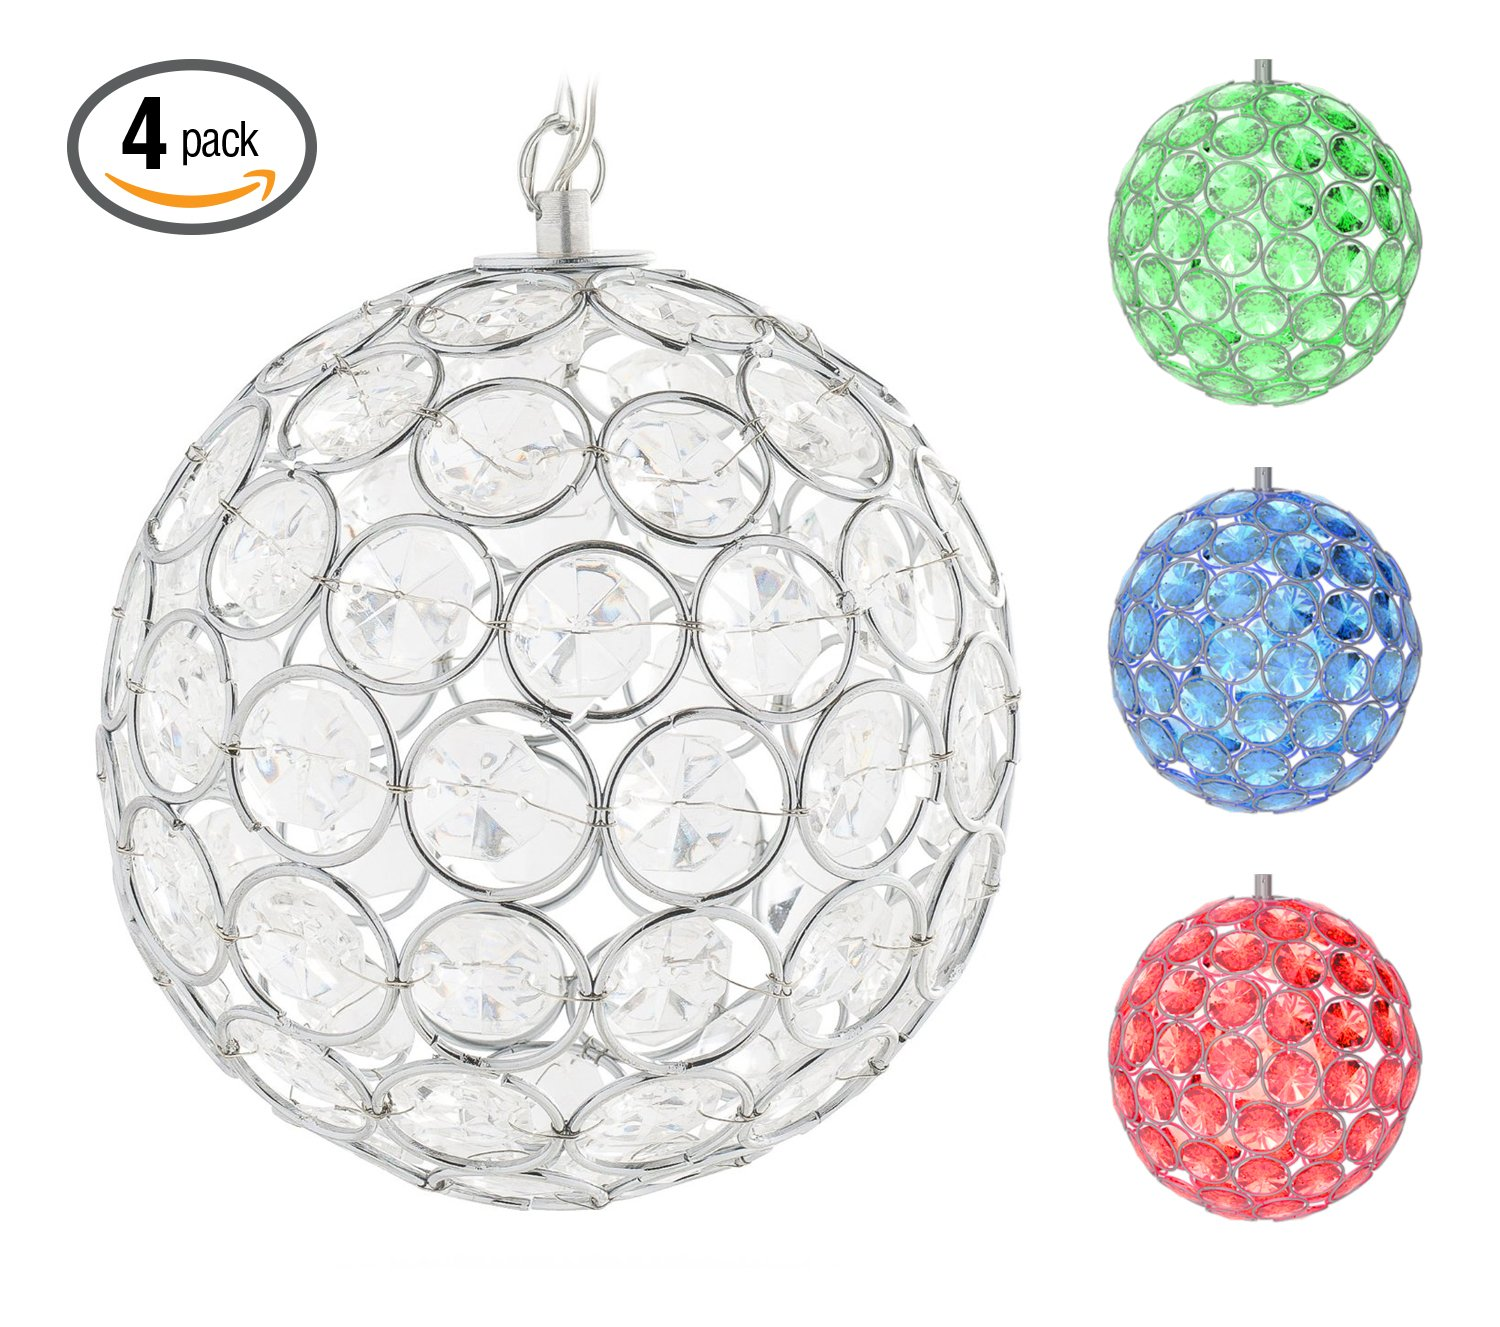 Hoont8482; Outdoor Hanging Decorative Sparkling Crystals Gazing Ball with Solar Powered Color Changing LED Light – 6 Inch Diameter (Pack of 4)